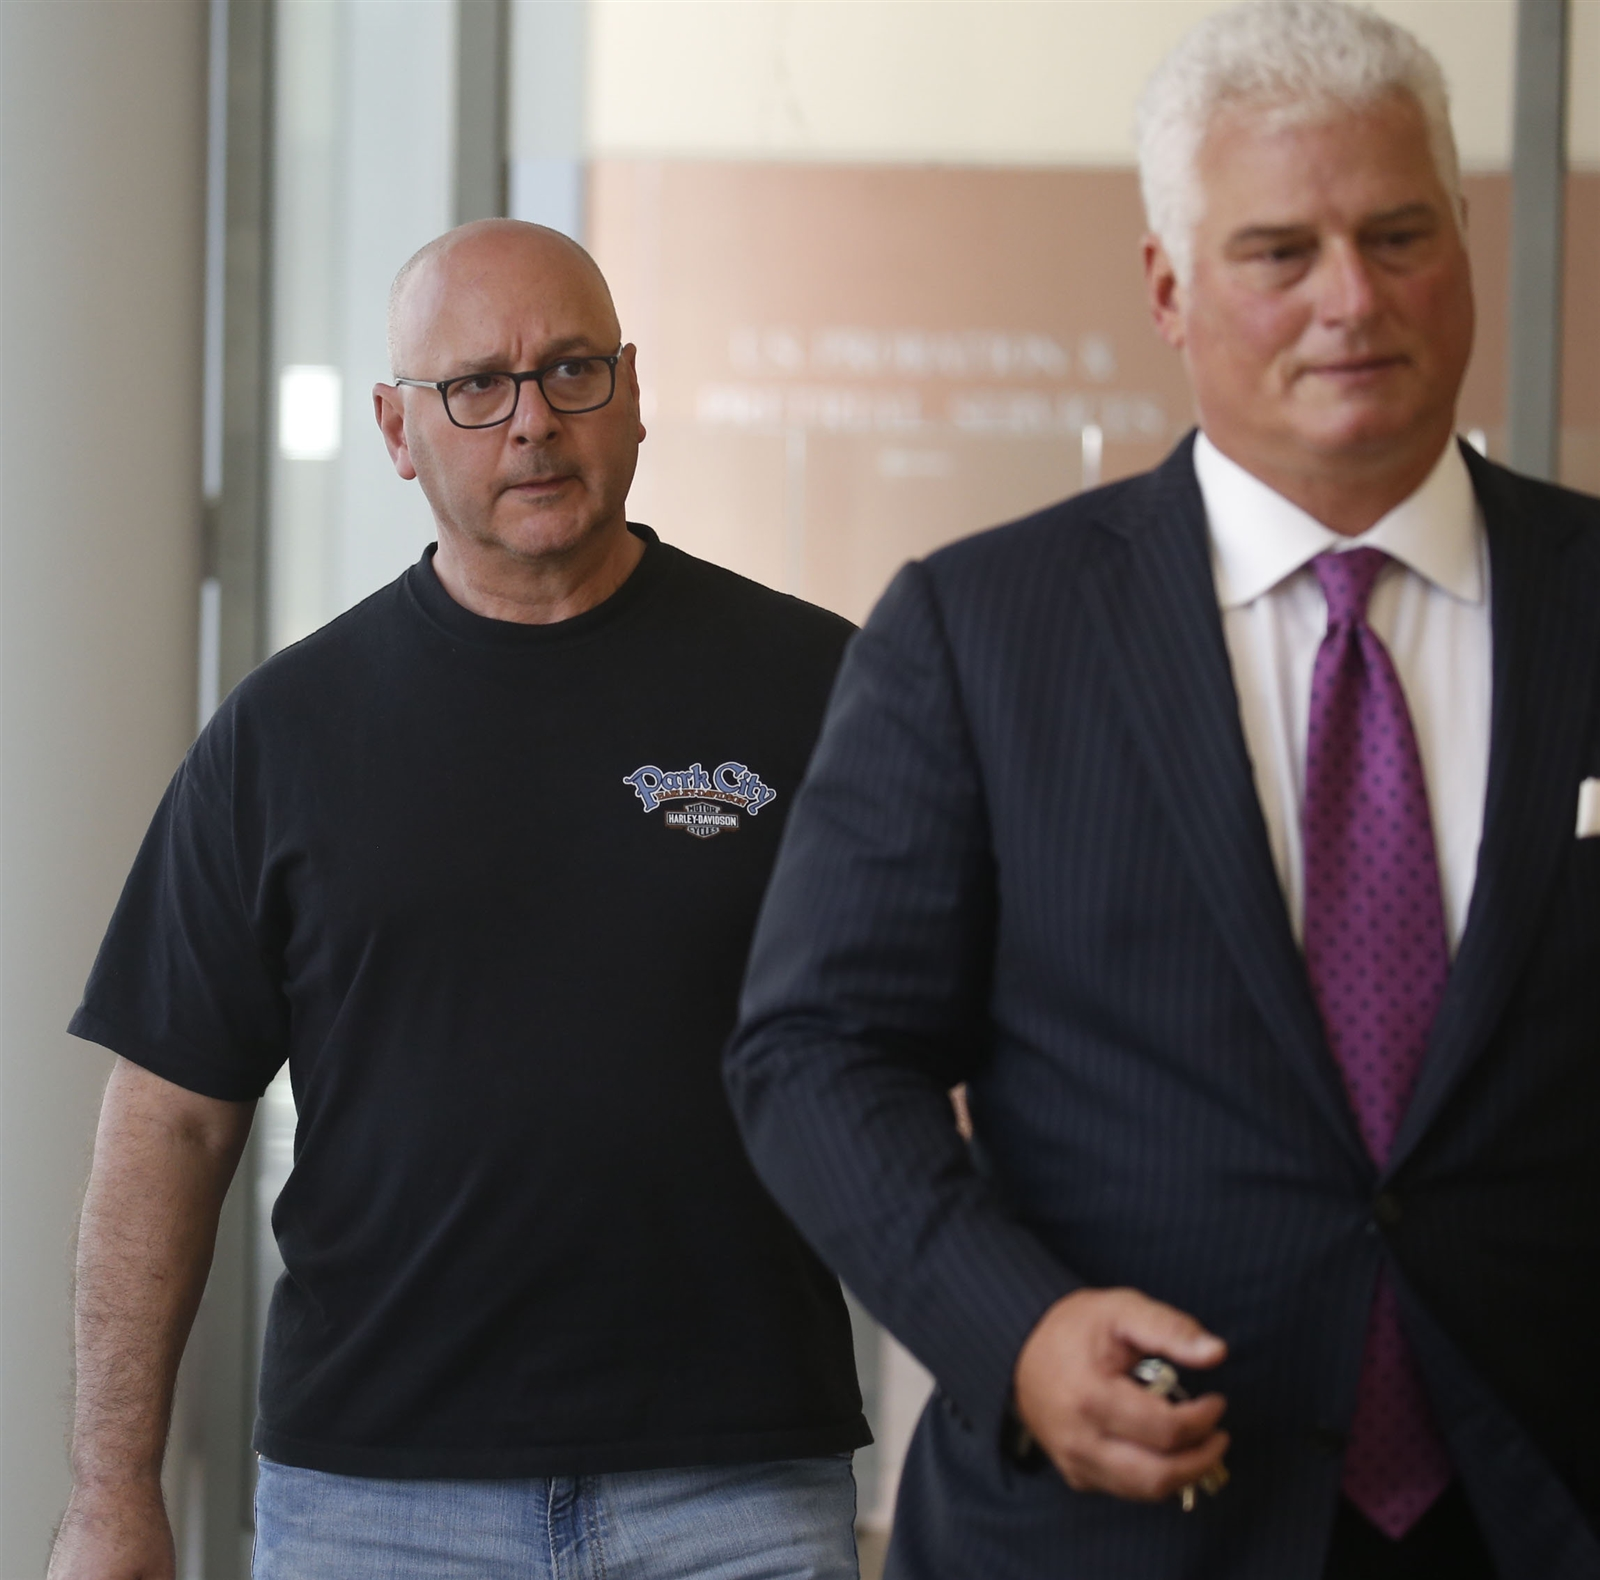 Louis P. Ciminelli, left, gets escorted out of Buffalo Federal court Thursday with his attorney, Daniel C. Oliverio, after facing charges of bid rigging and bribery.